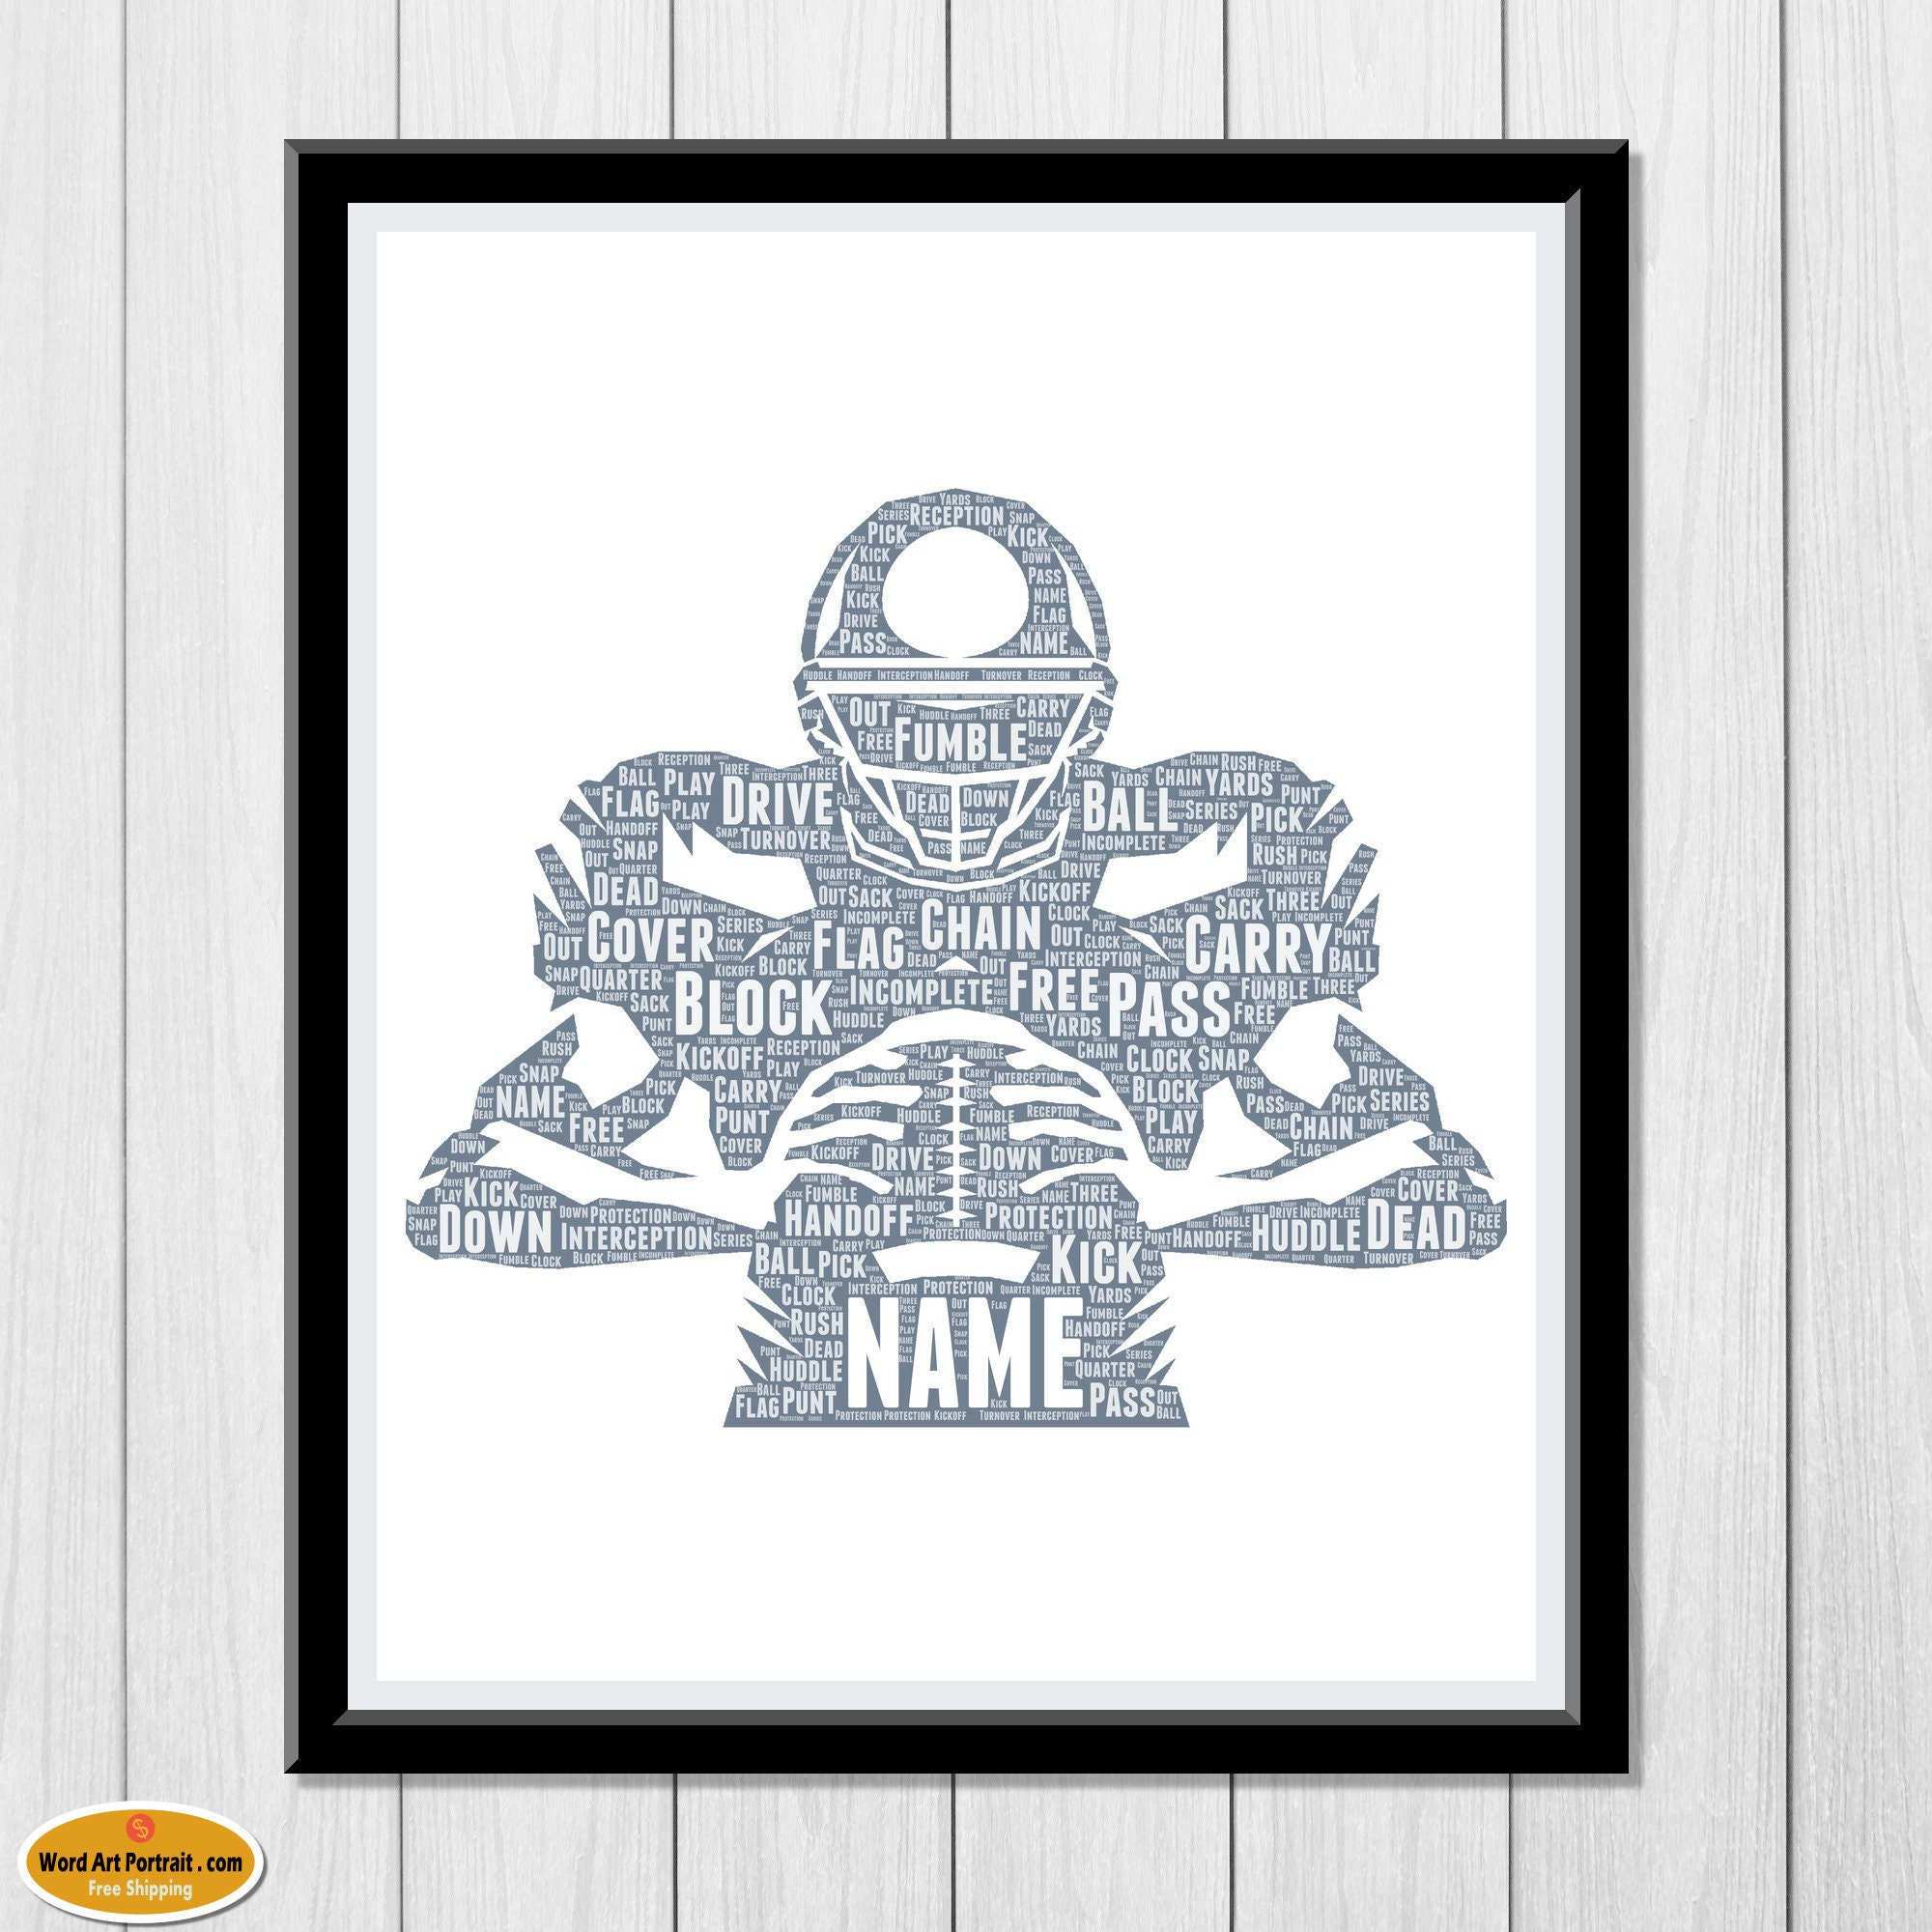 Football Wall Art - Personalized Gift - For Son- Dad- Uncle Brother Husband - Football Word Wall Art Room Prints Foot Ball